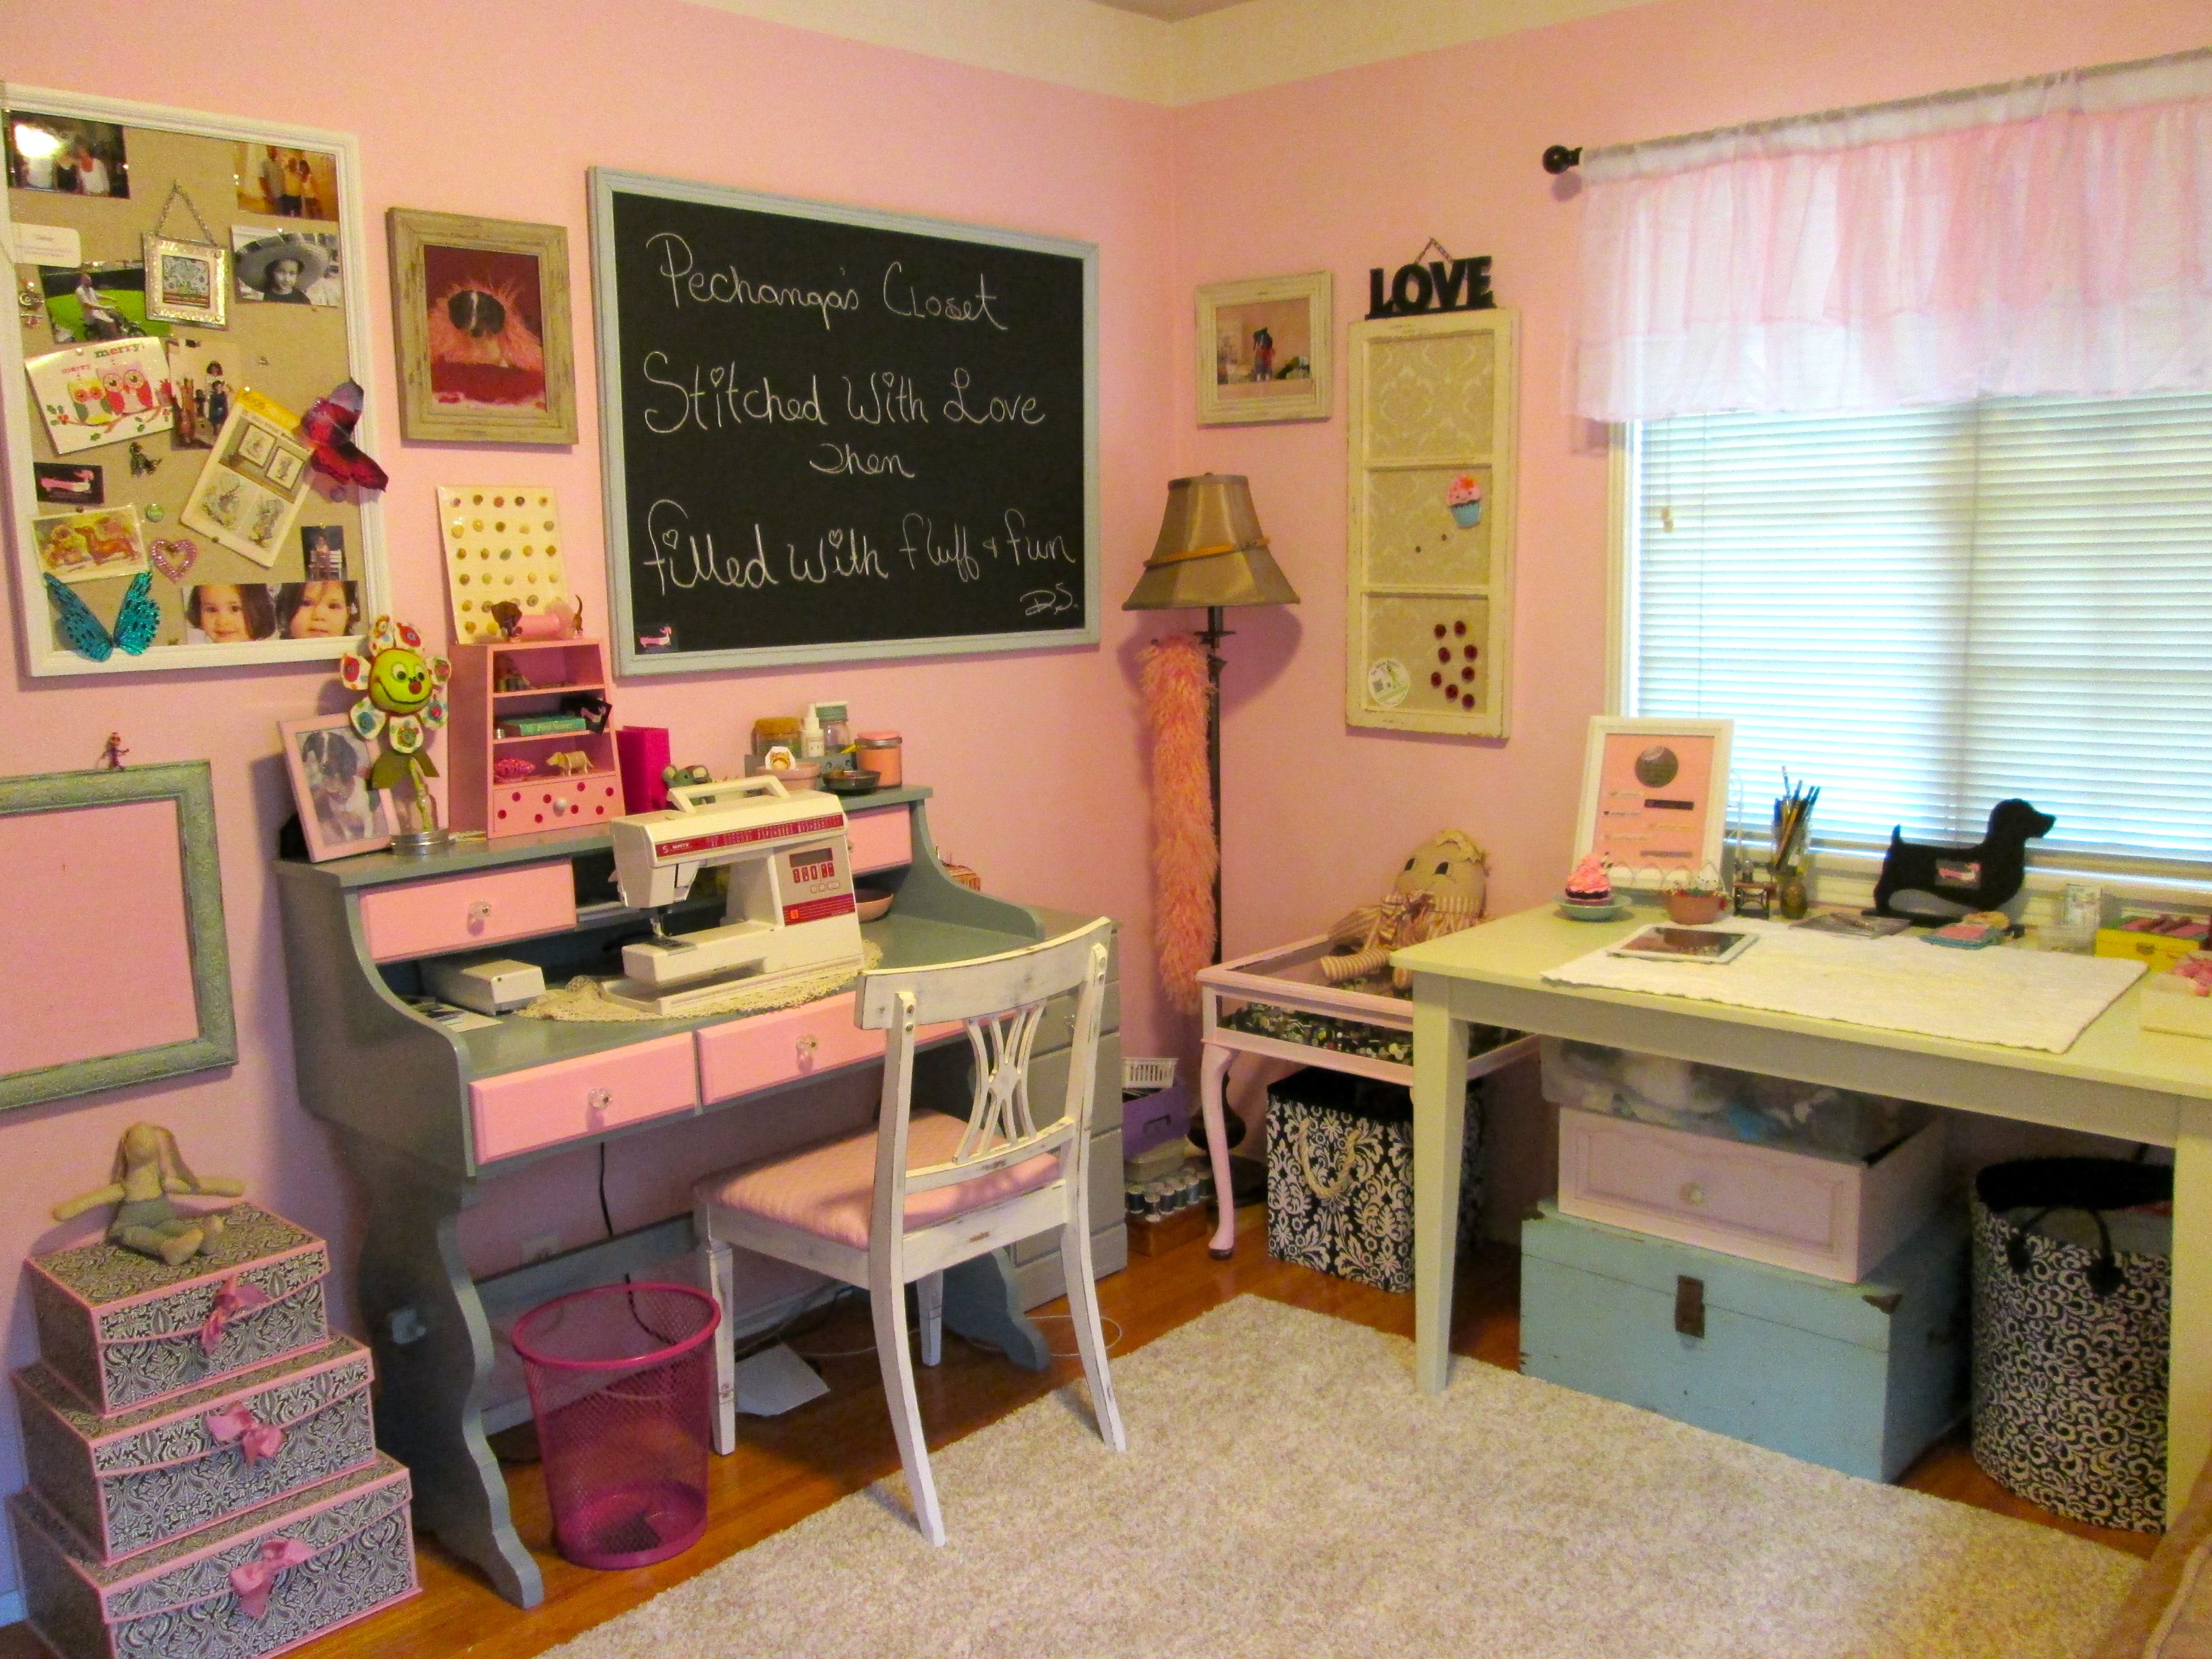 Diy sewing table ikea pink craft  my lovely sisterinlaws new sewing room  mi cuarto